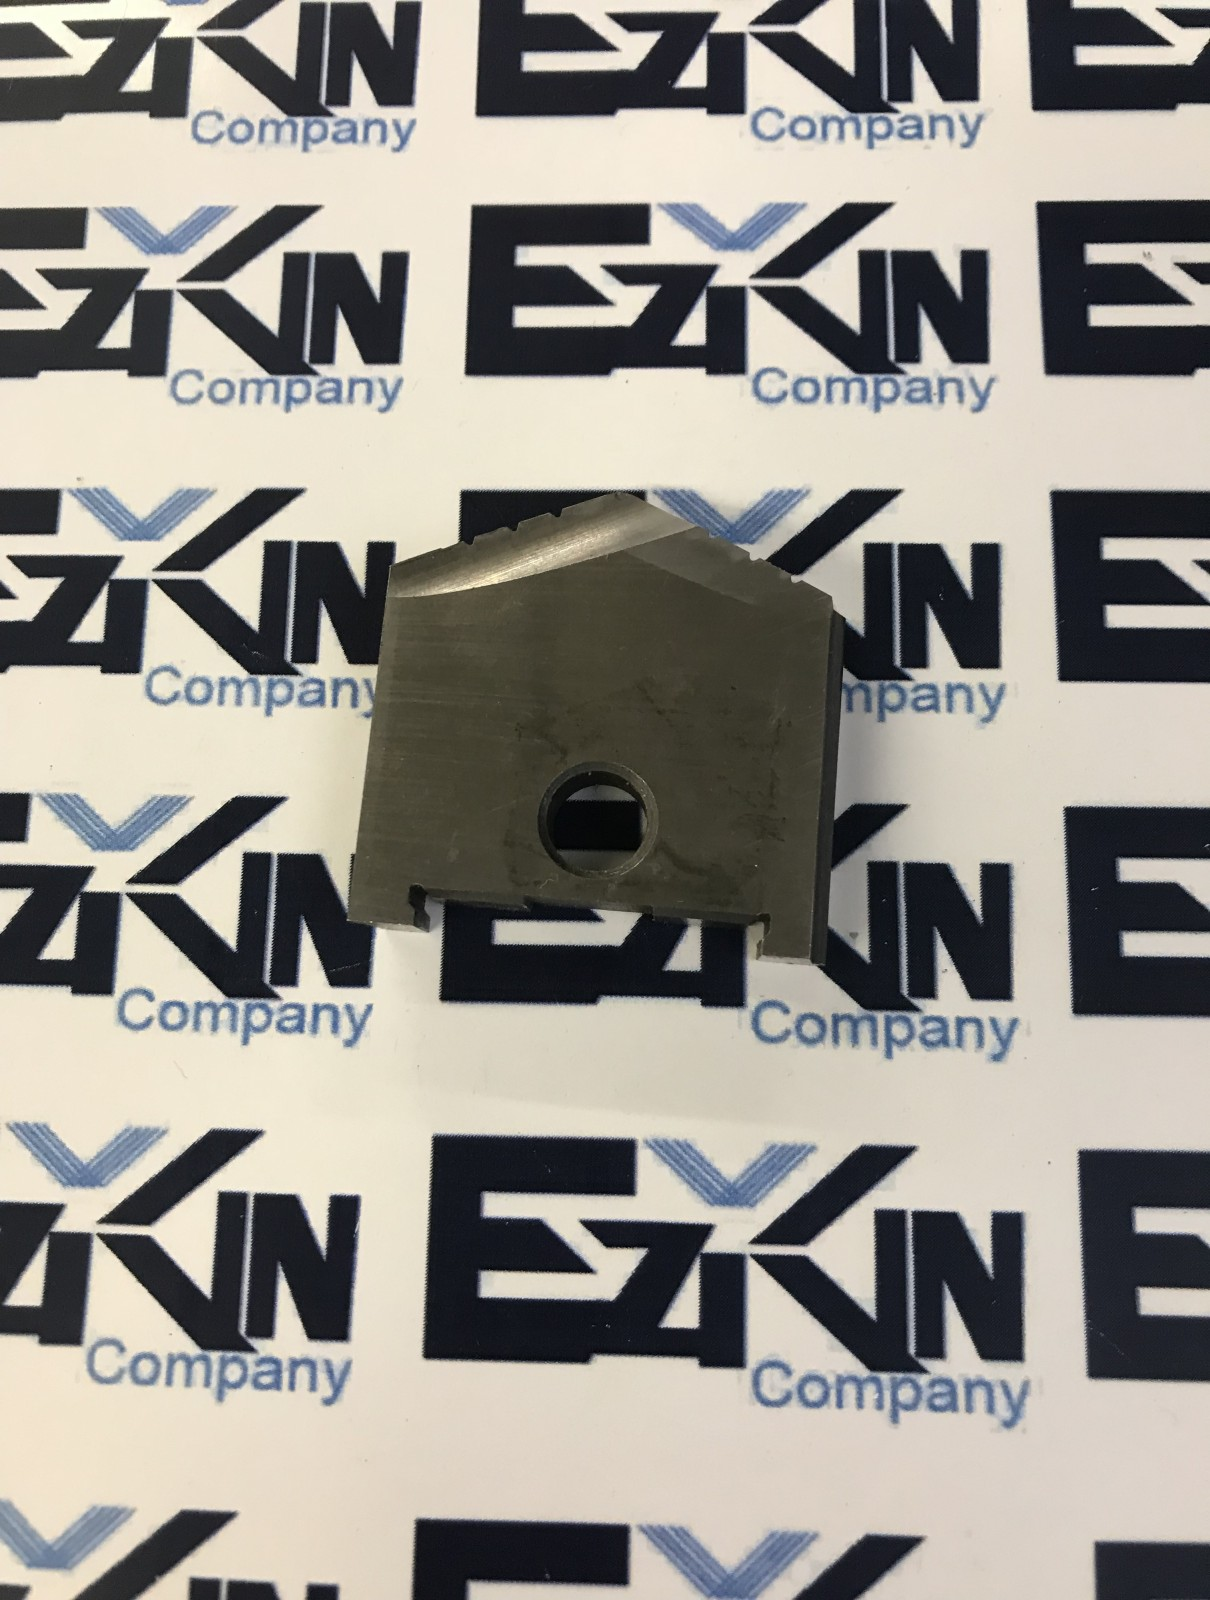 Allied Machine & Engineering 10224-0116  Spade Drill Insert 1-1/2 blade B